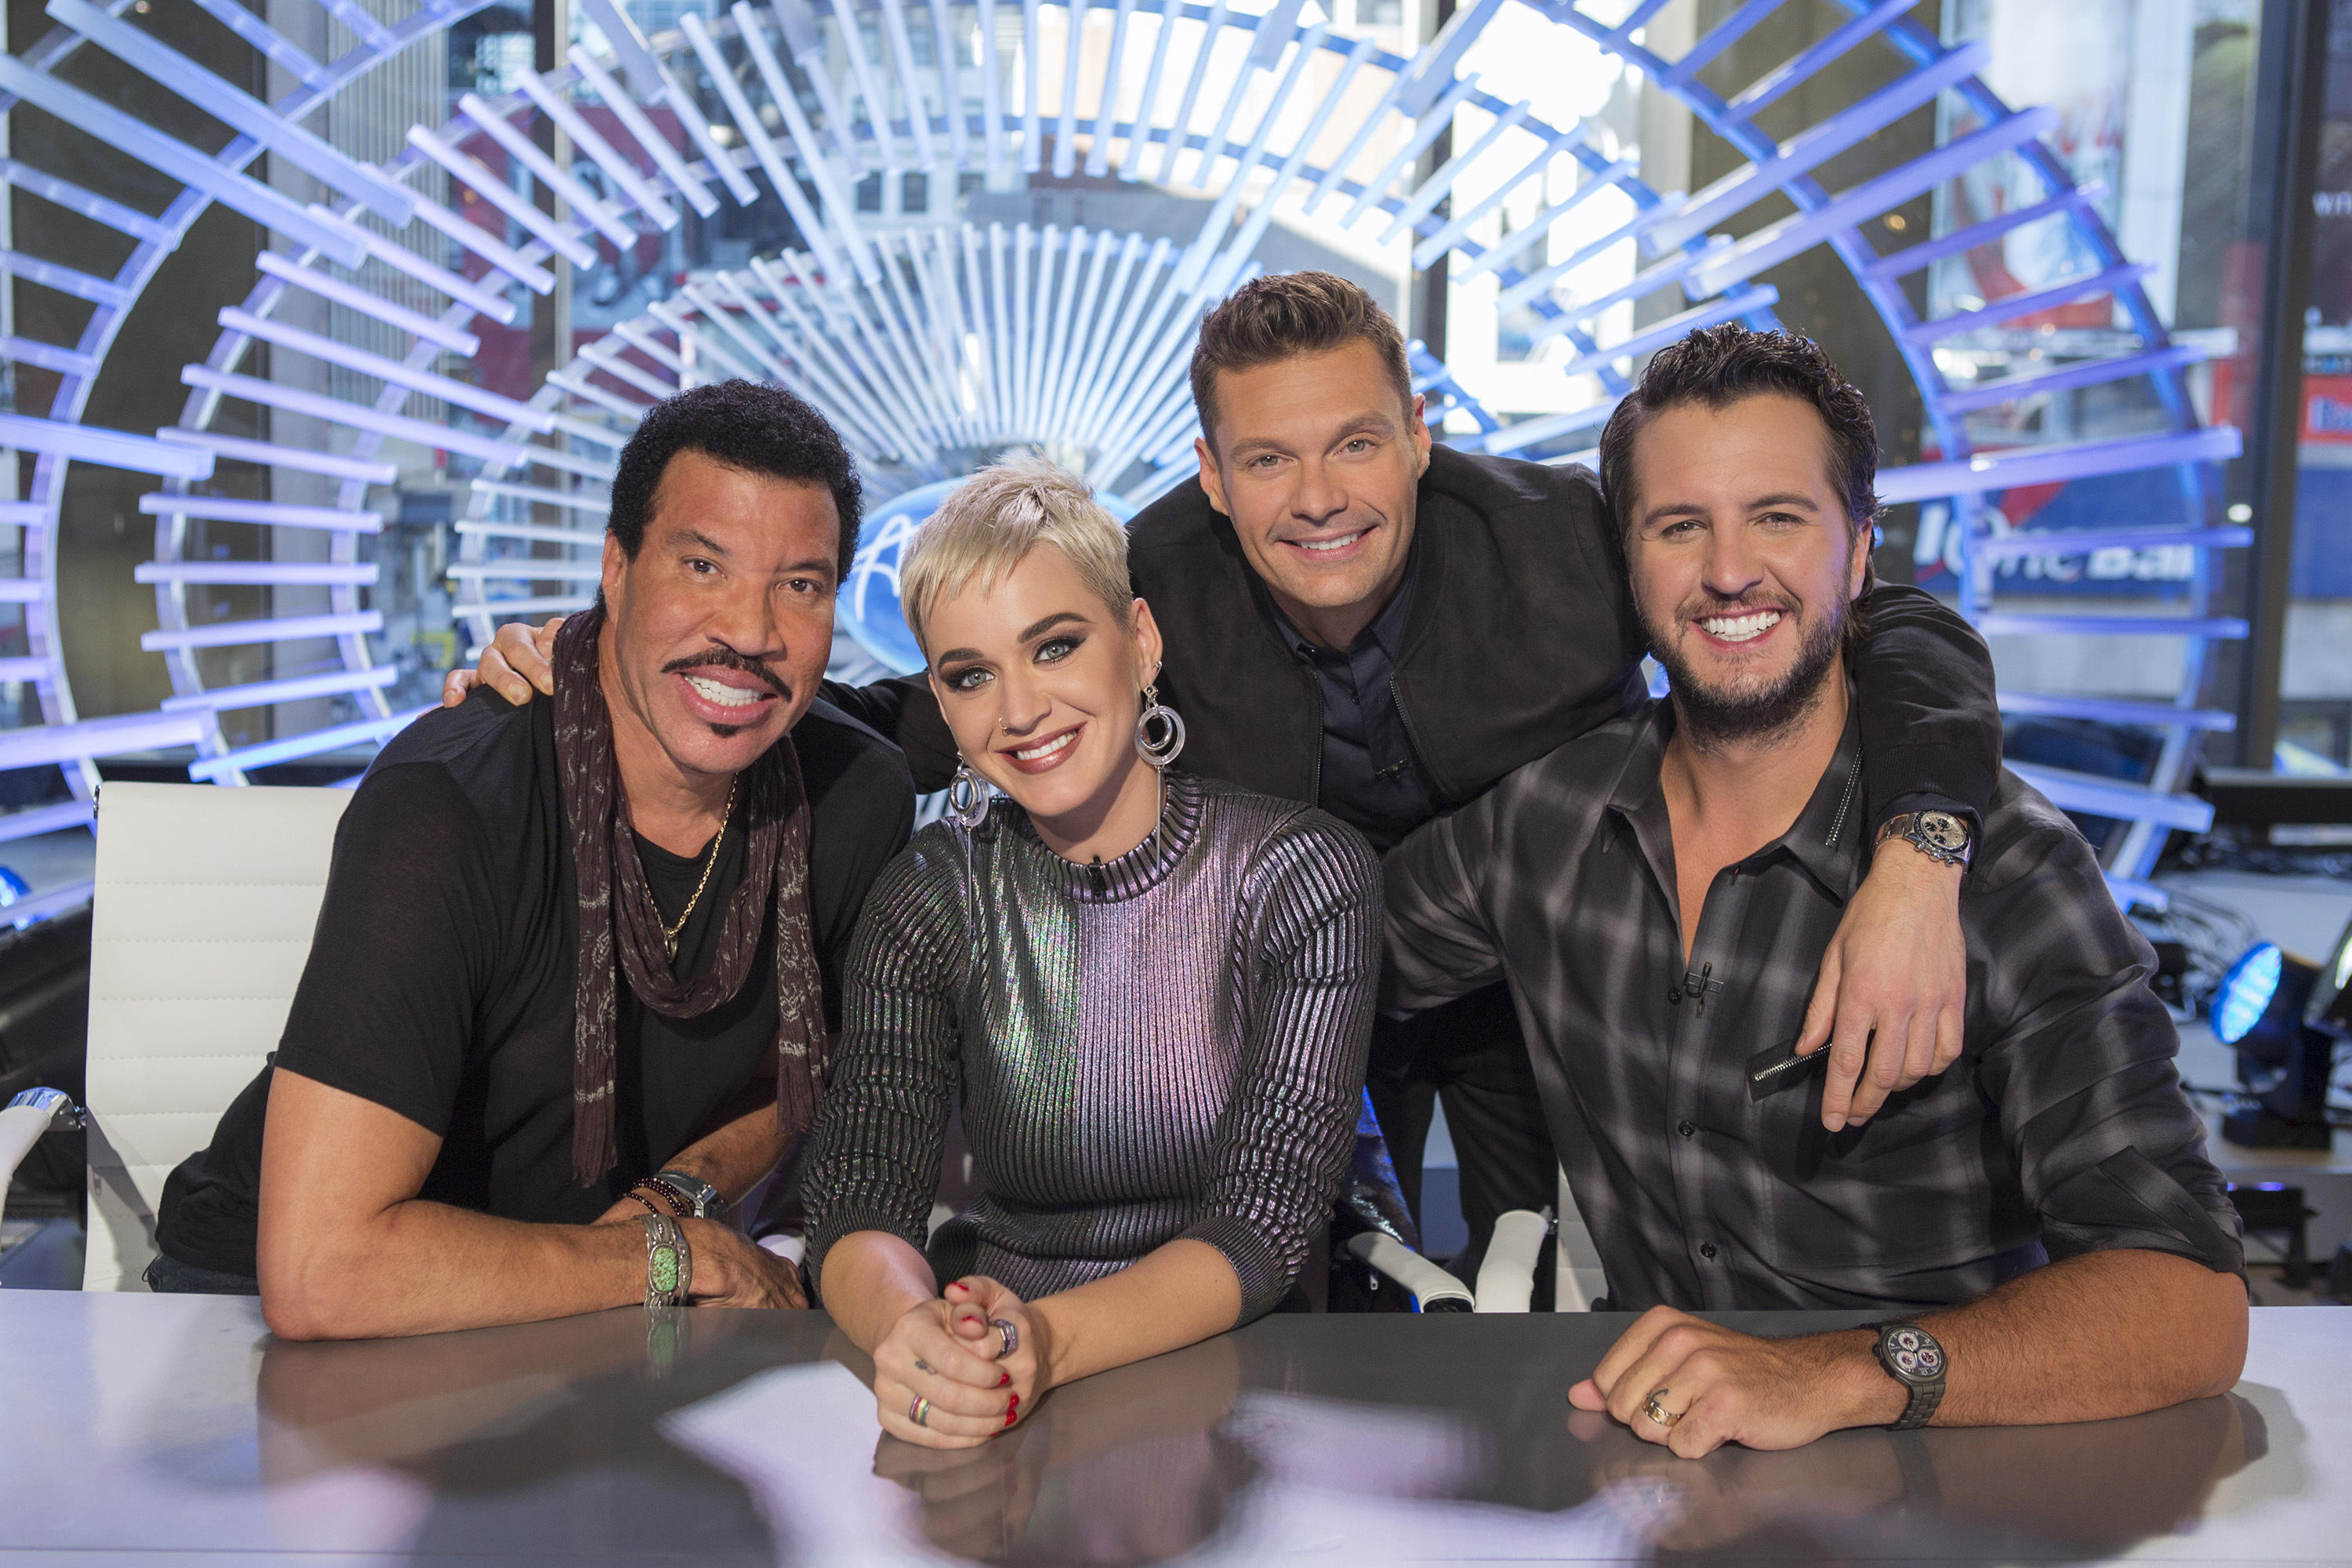 Are you the next American Idol? The audition bus is coming